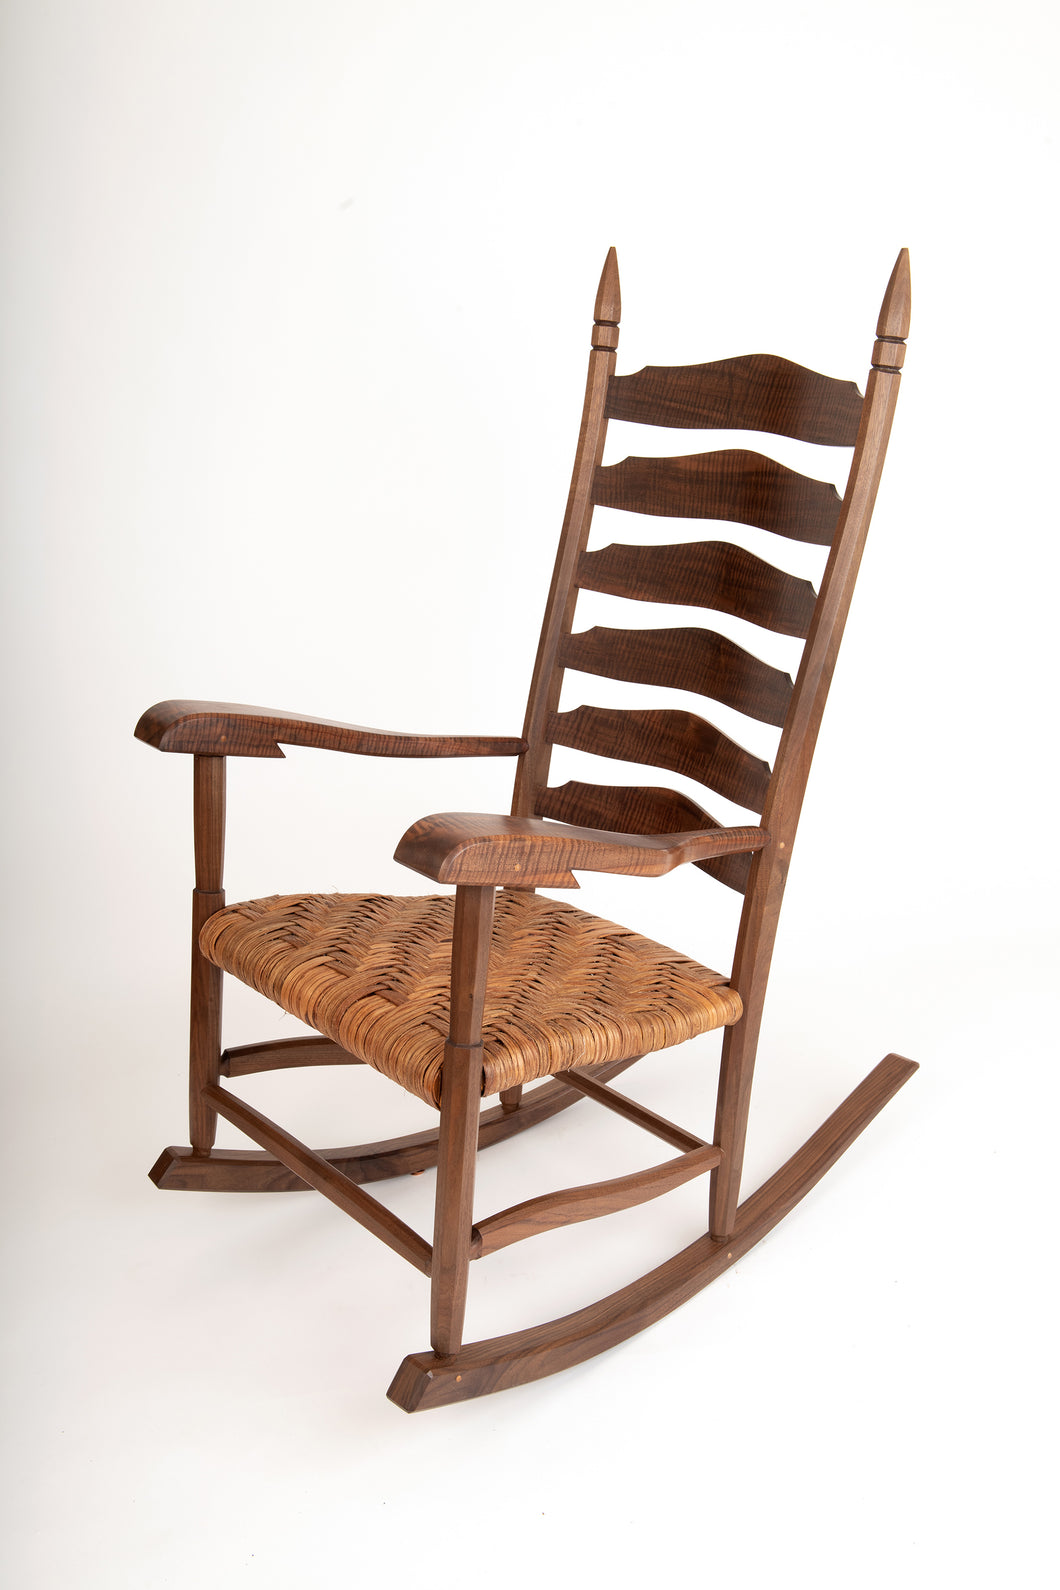 Black and Claro Walnut rocking chair